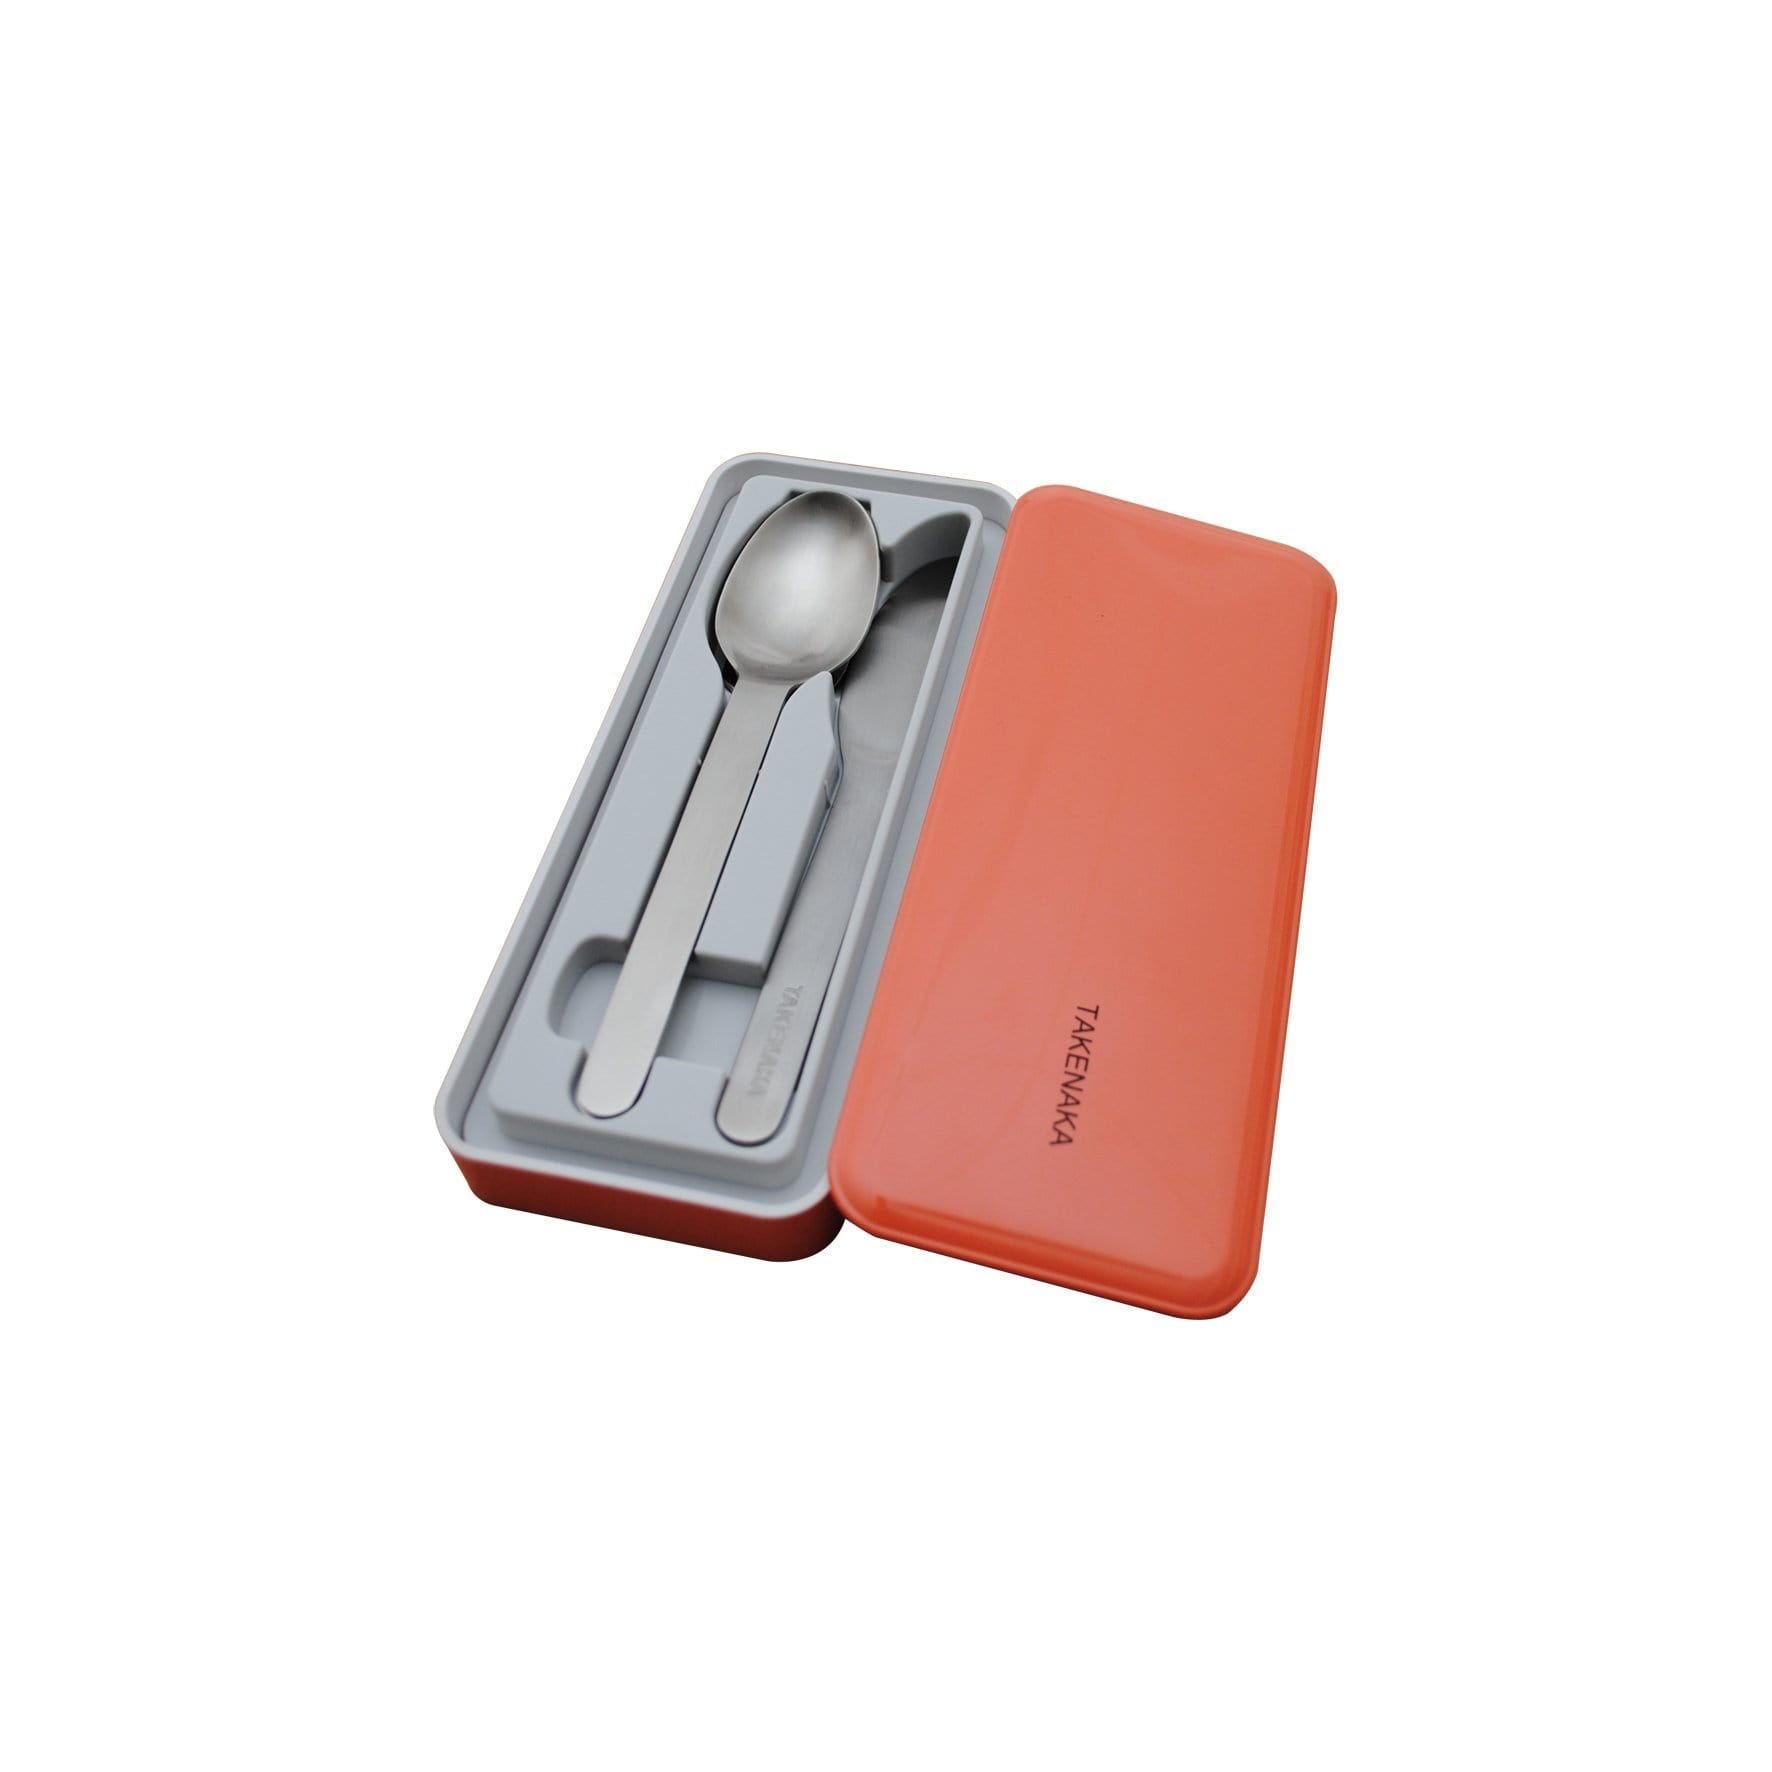 TAKENAKA BENTOBOX Cutlery Case ACCESSORIES CUTLERY CASE Coral